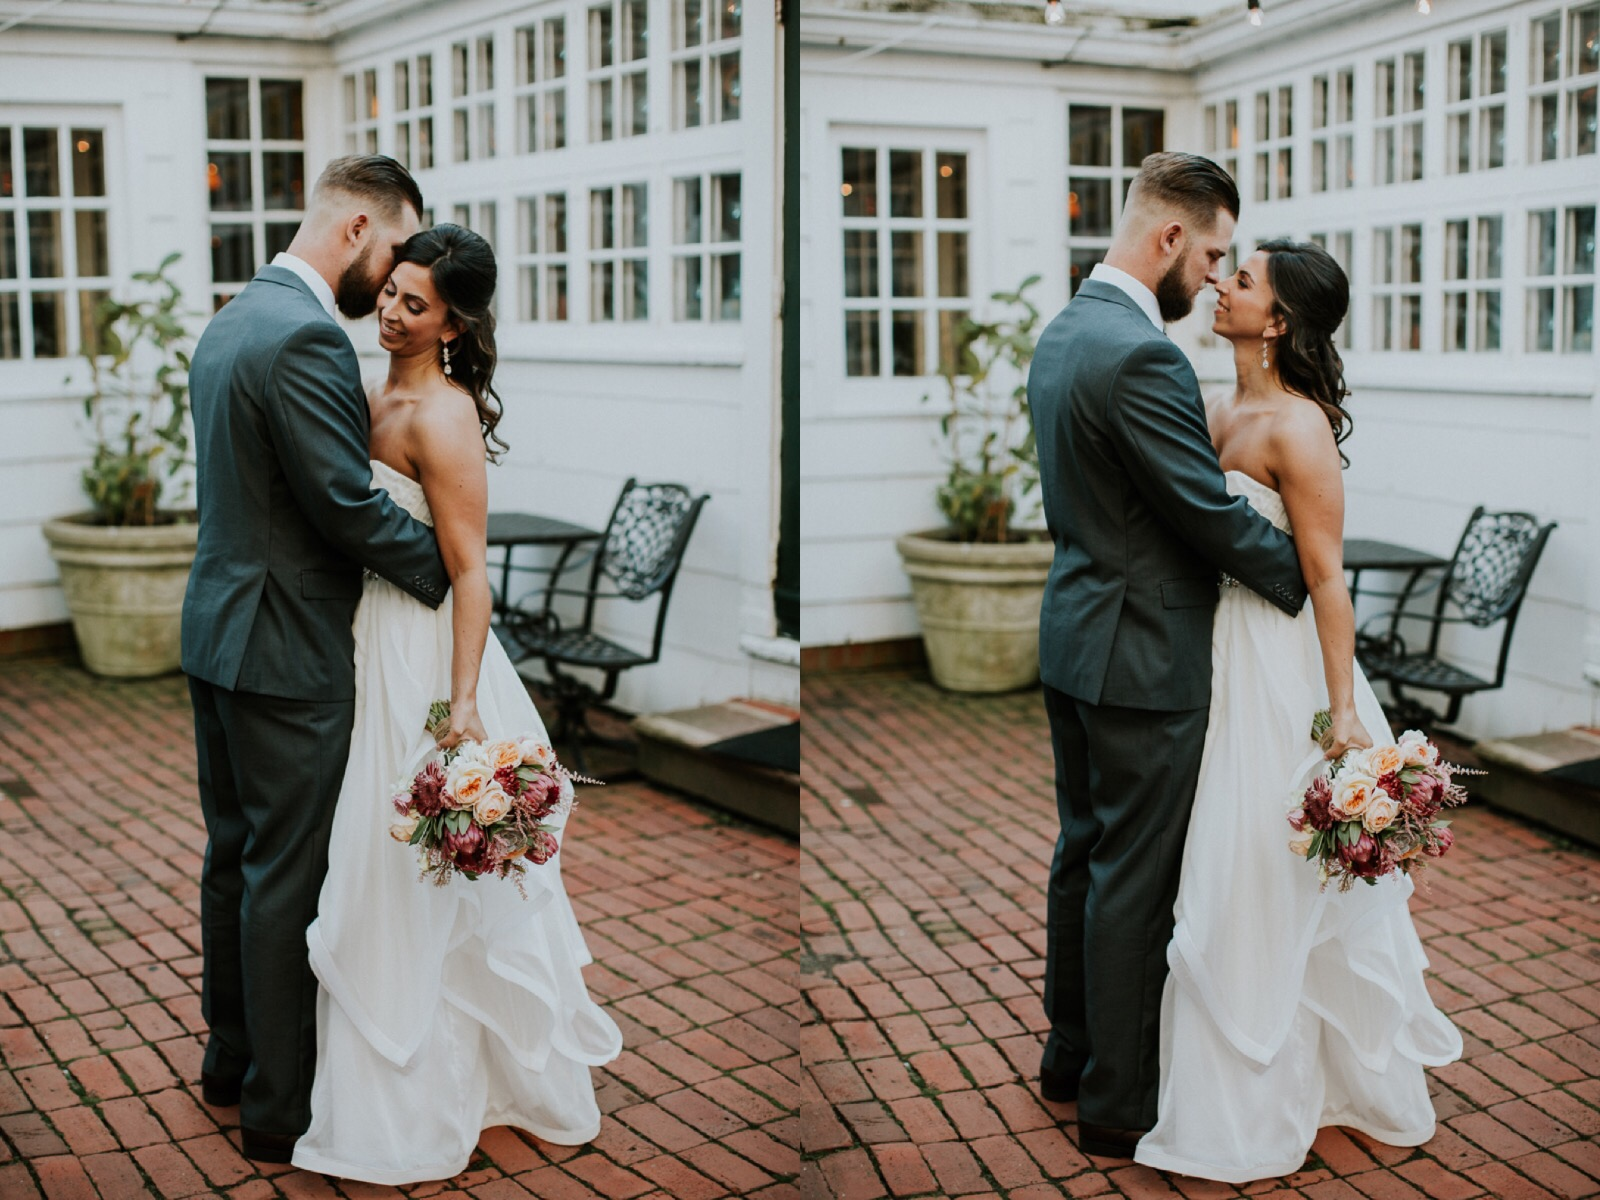 Taylor and Bruce photographed by Lauren Louise Photography at Three Rivers Inn